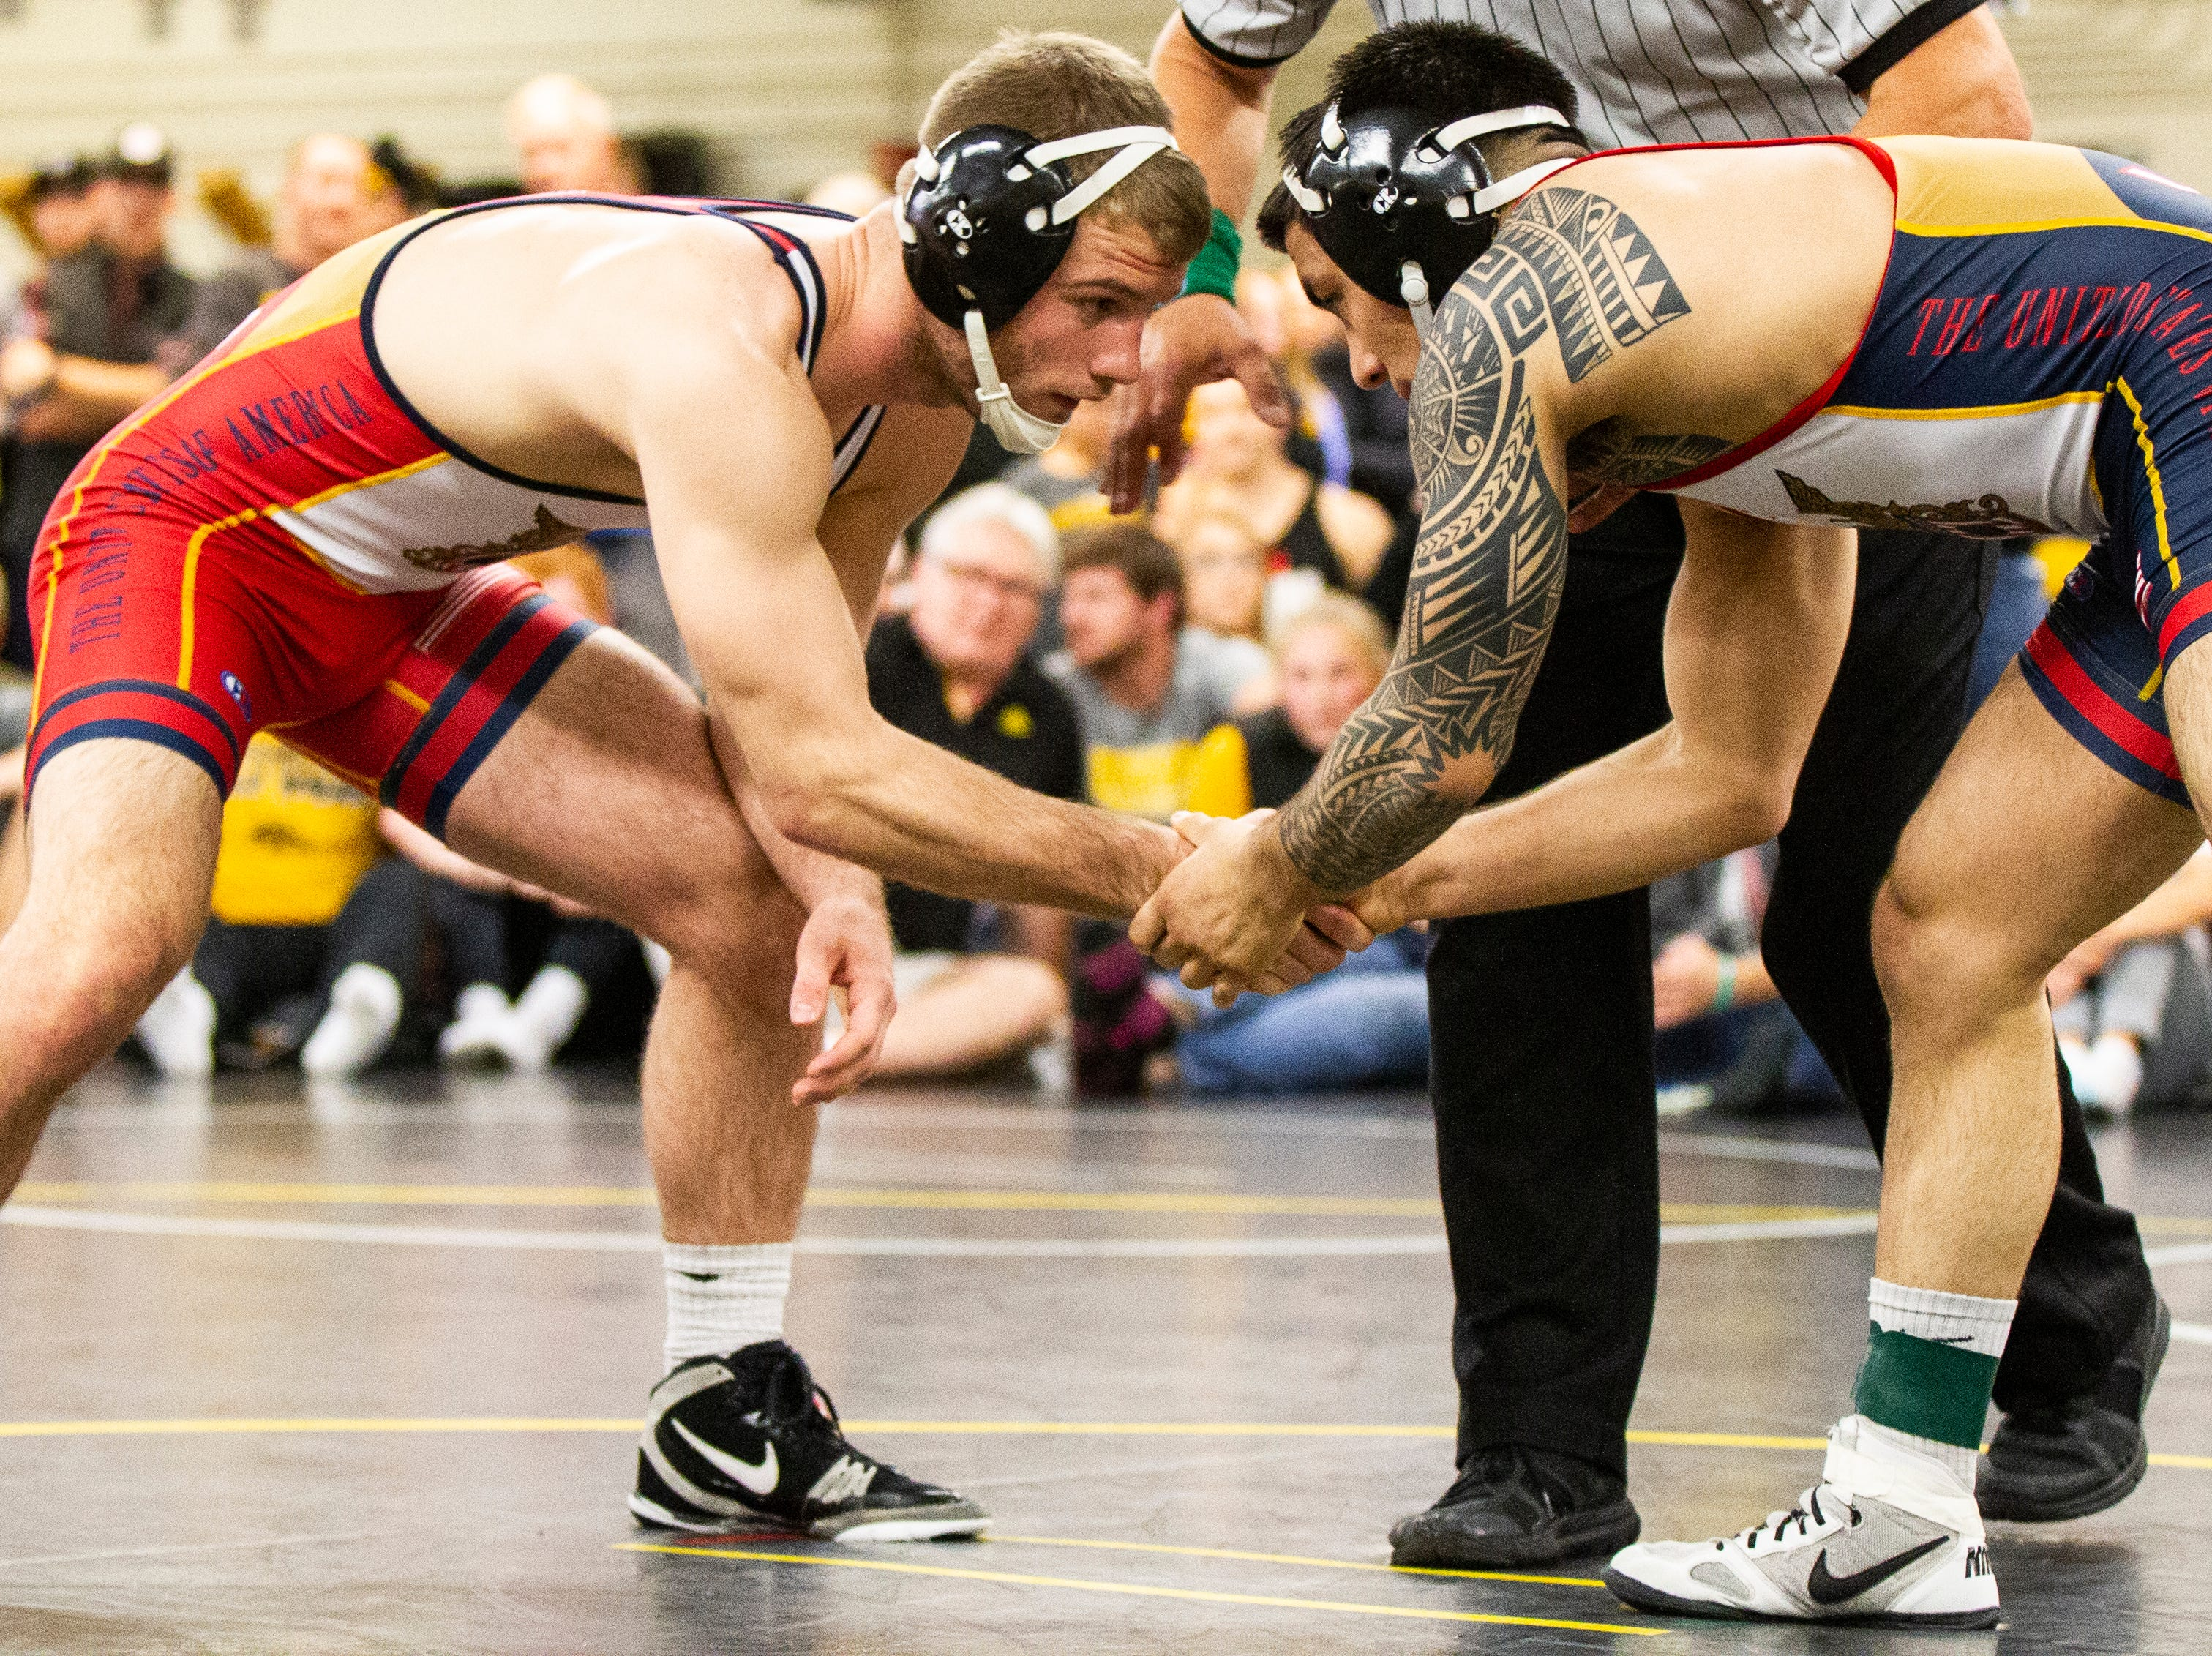 Iowa's Zach Axmear (left) shakes hands with Pat Lugo before their match at 149 during the wrestle-offs on Friday, Nov. 2, 2018, inside the Dan Gable Wrestling Complex at Carver-Hawkeye Arena in Iowa City.